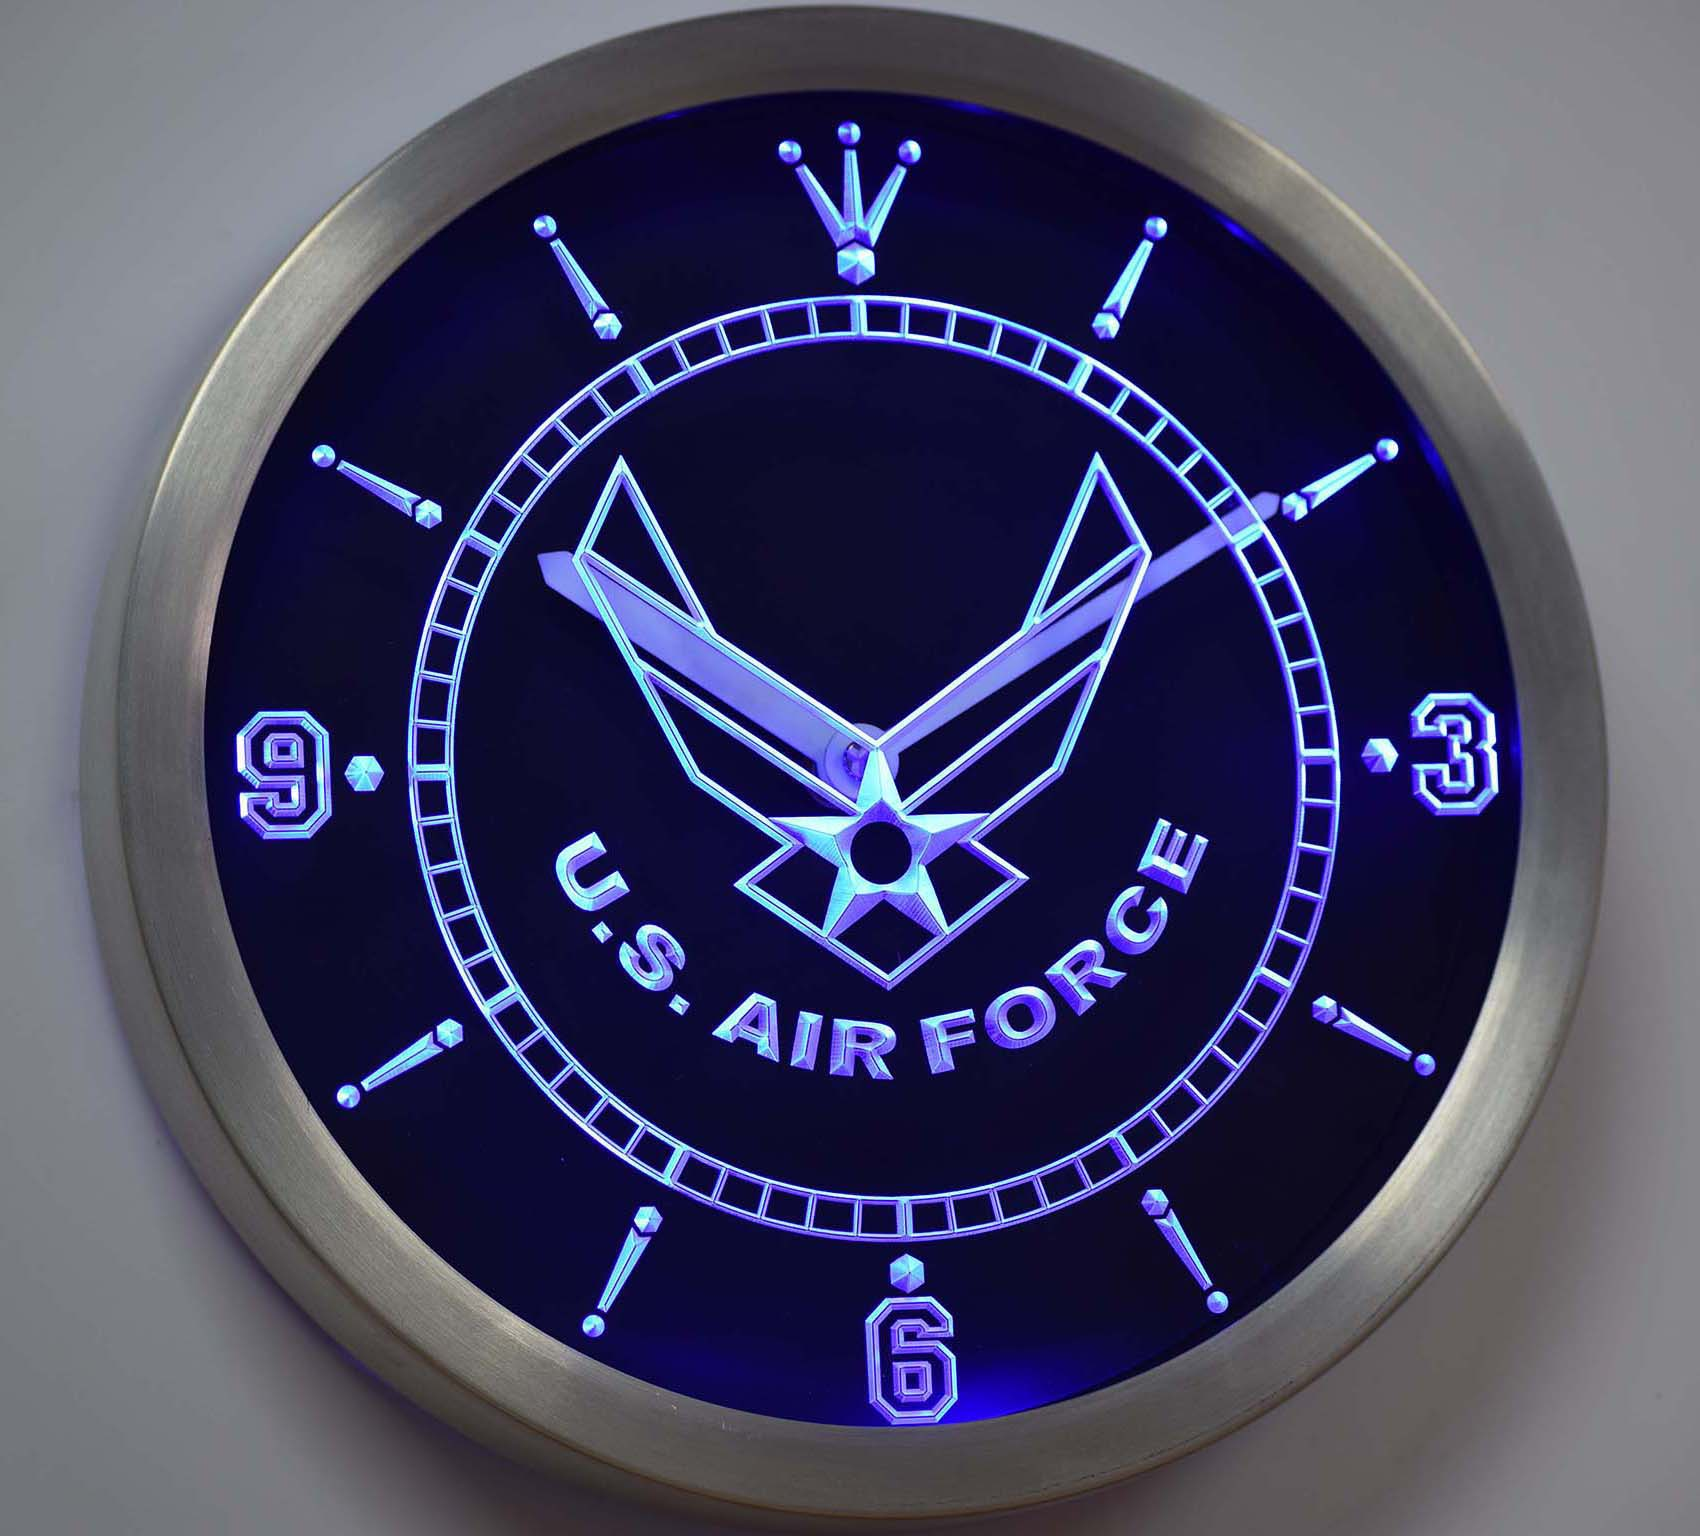 Nc-tm175 US Air Force Enseigne Au Néon Horloge Murale LED